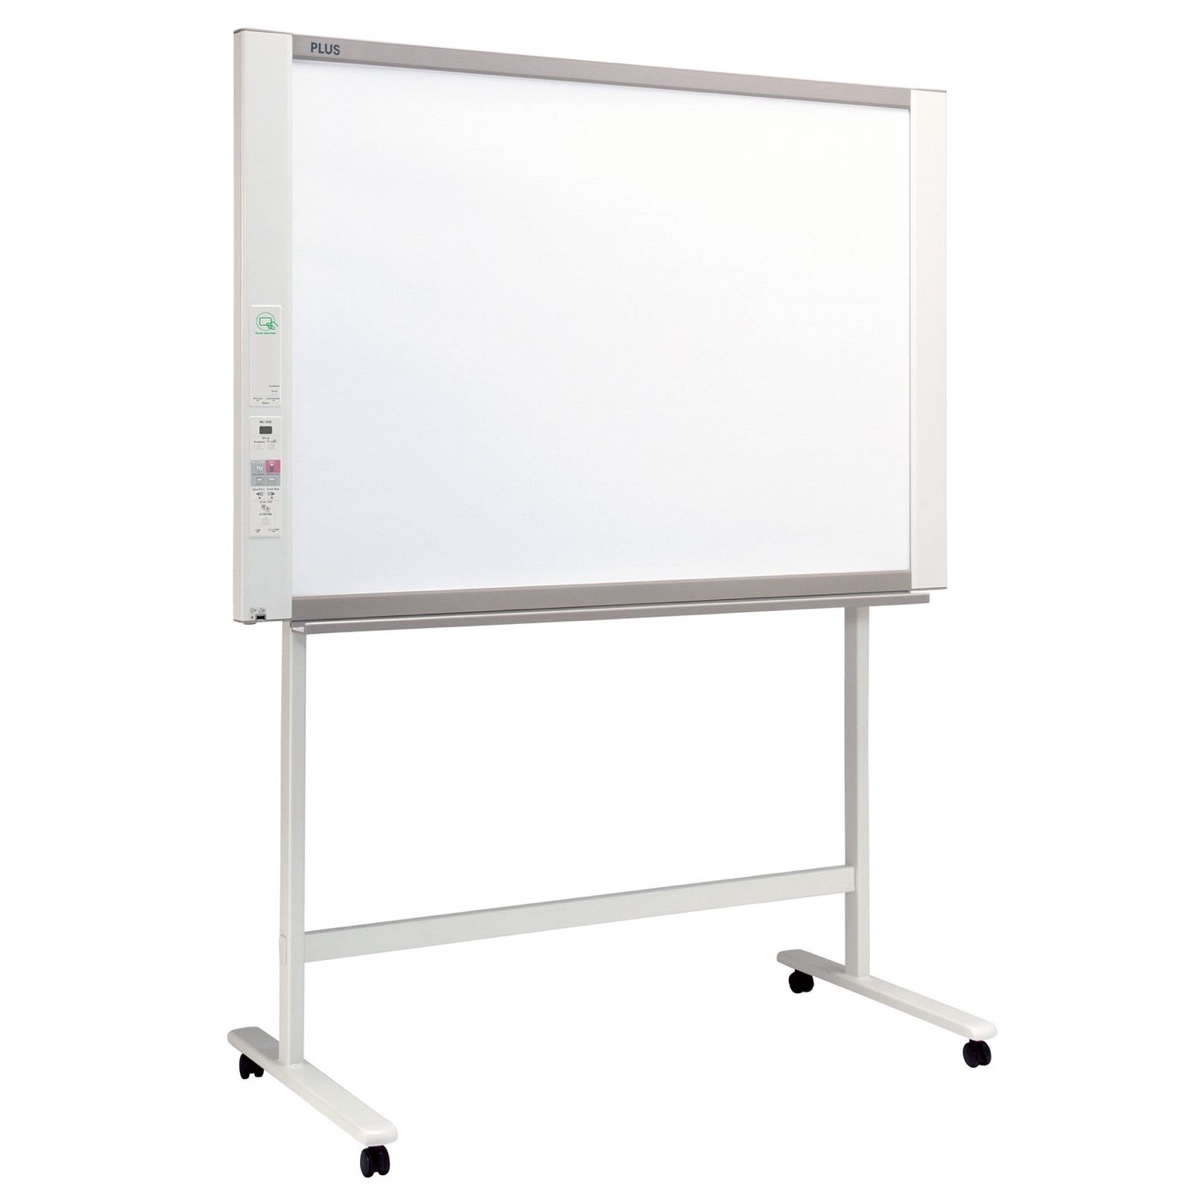 PLUS Whiteboards:  The PLUS Copyboard N-324